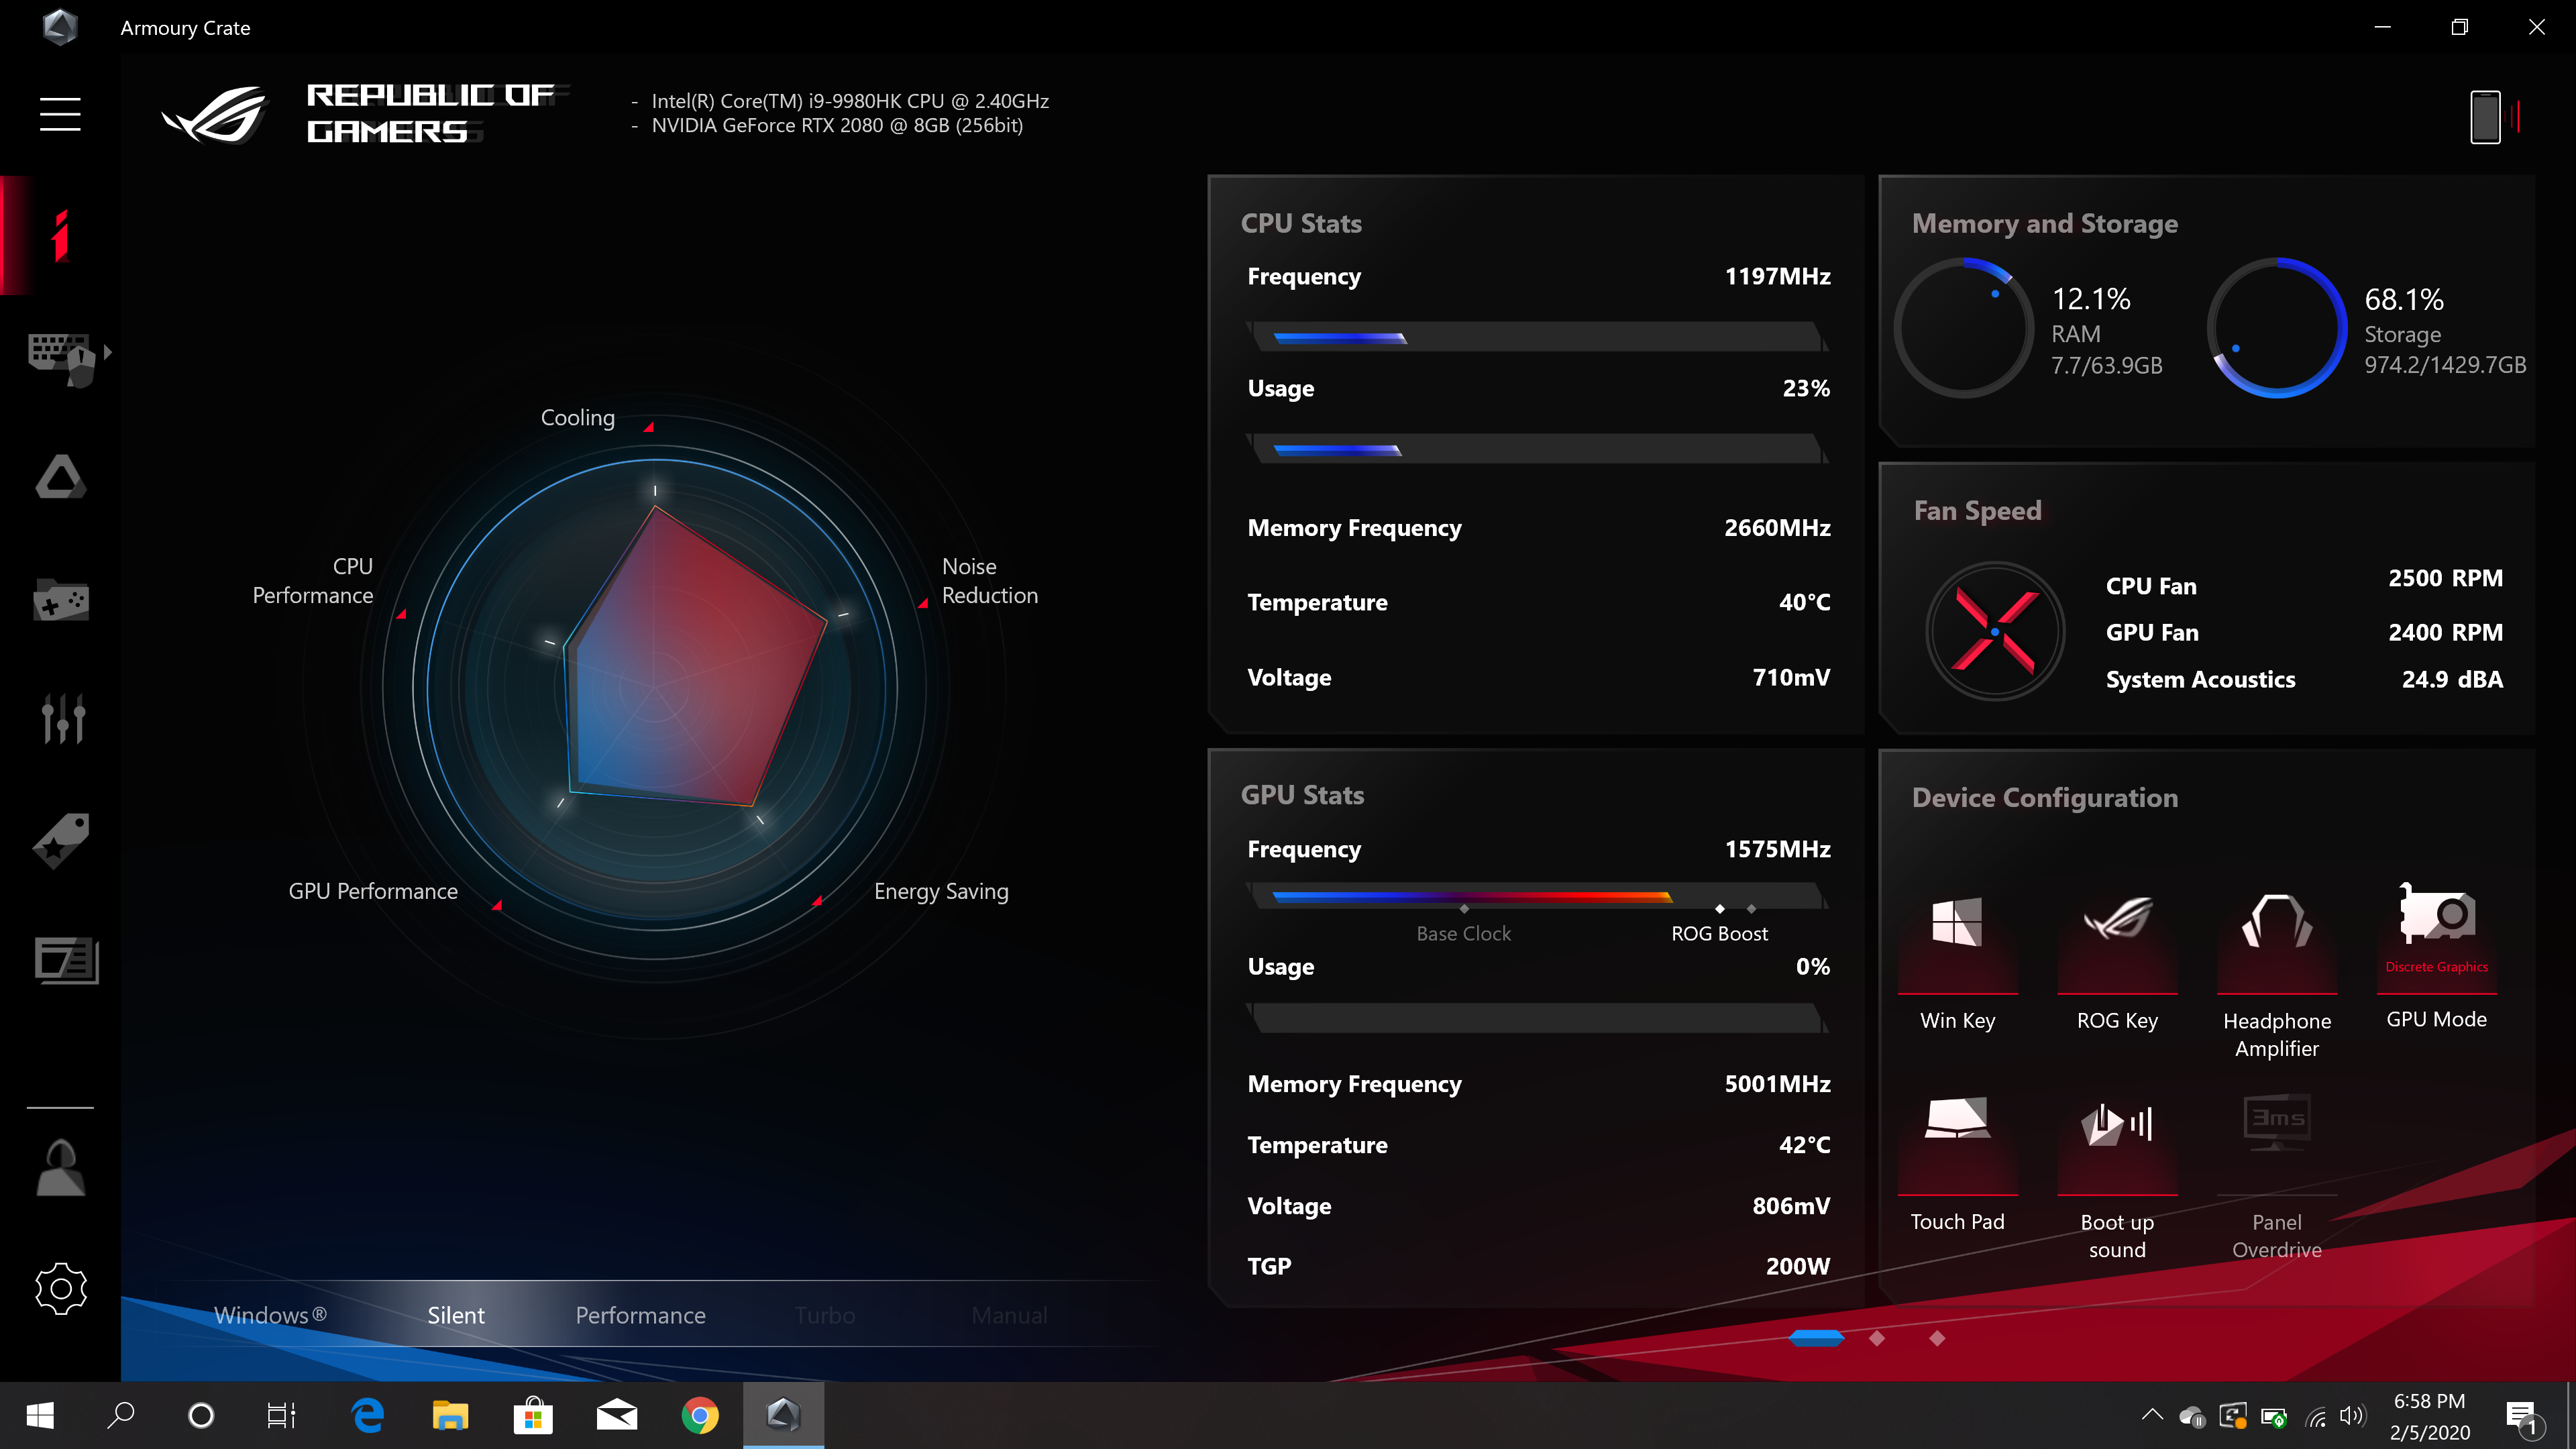 Review: Asus ROG Mothership, the Surface Pro on steroids 23